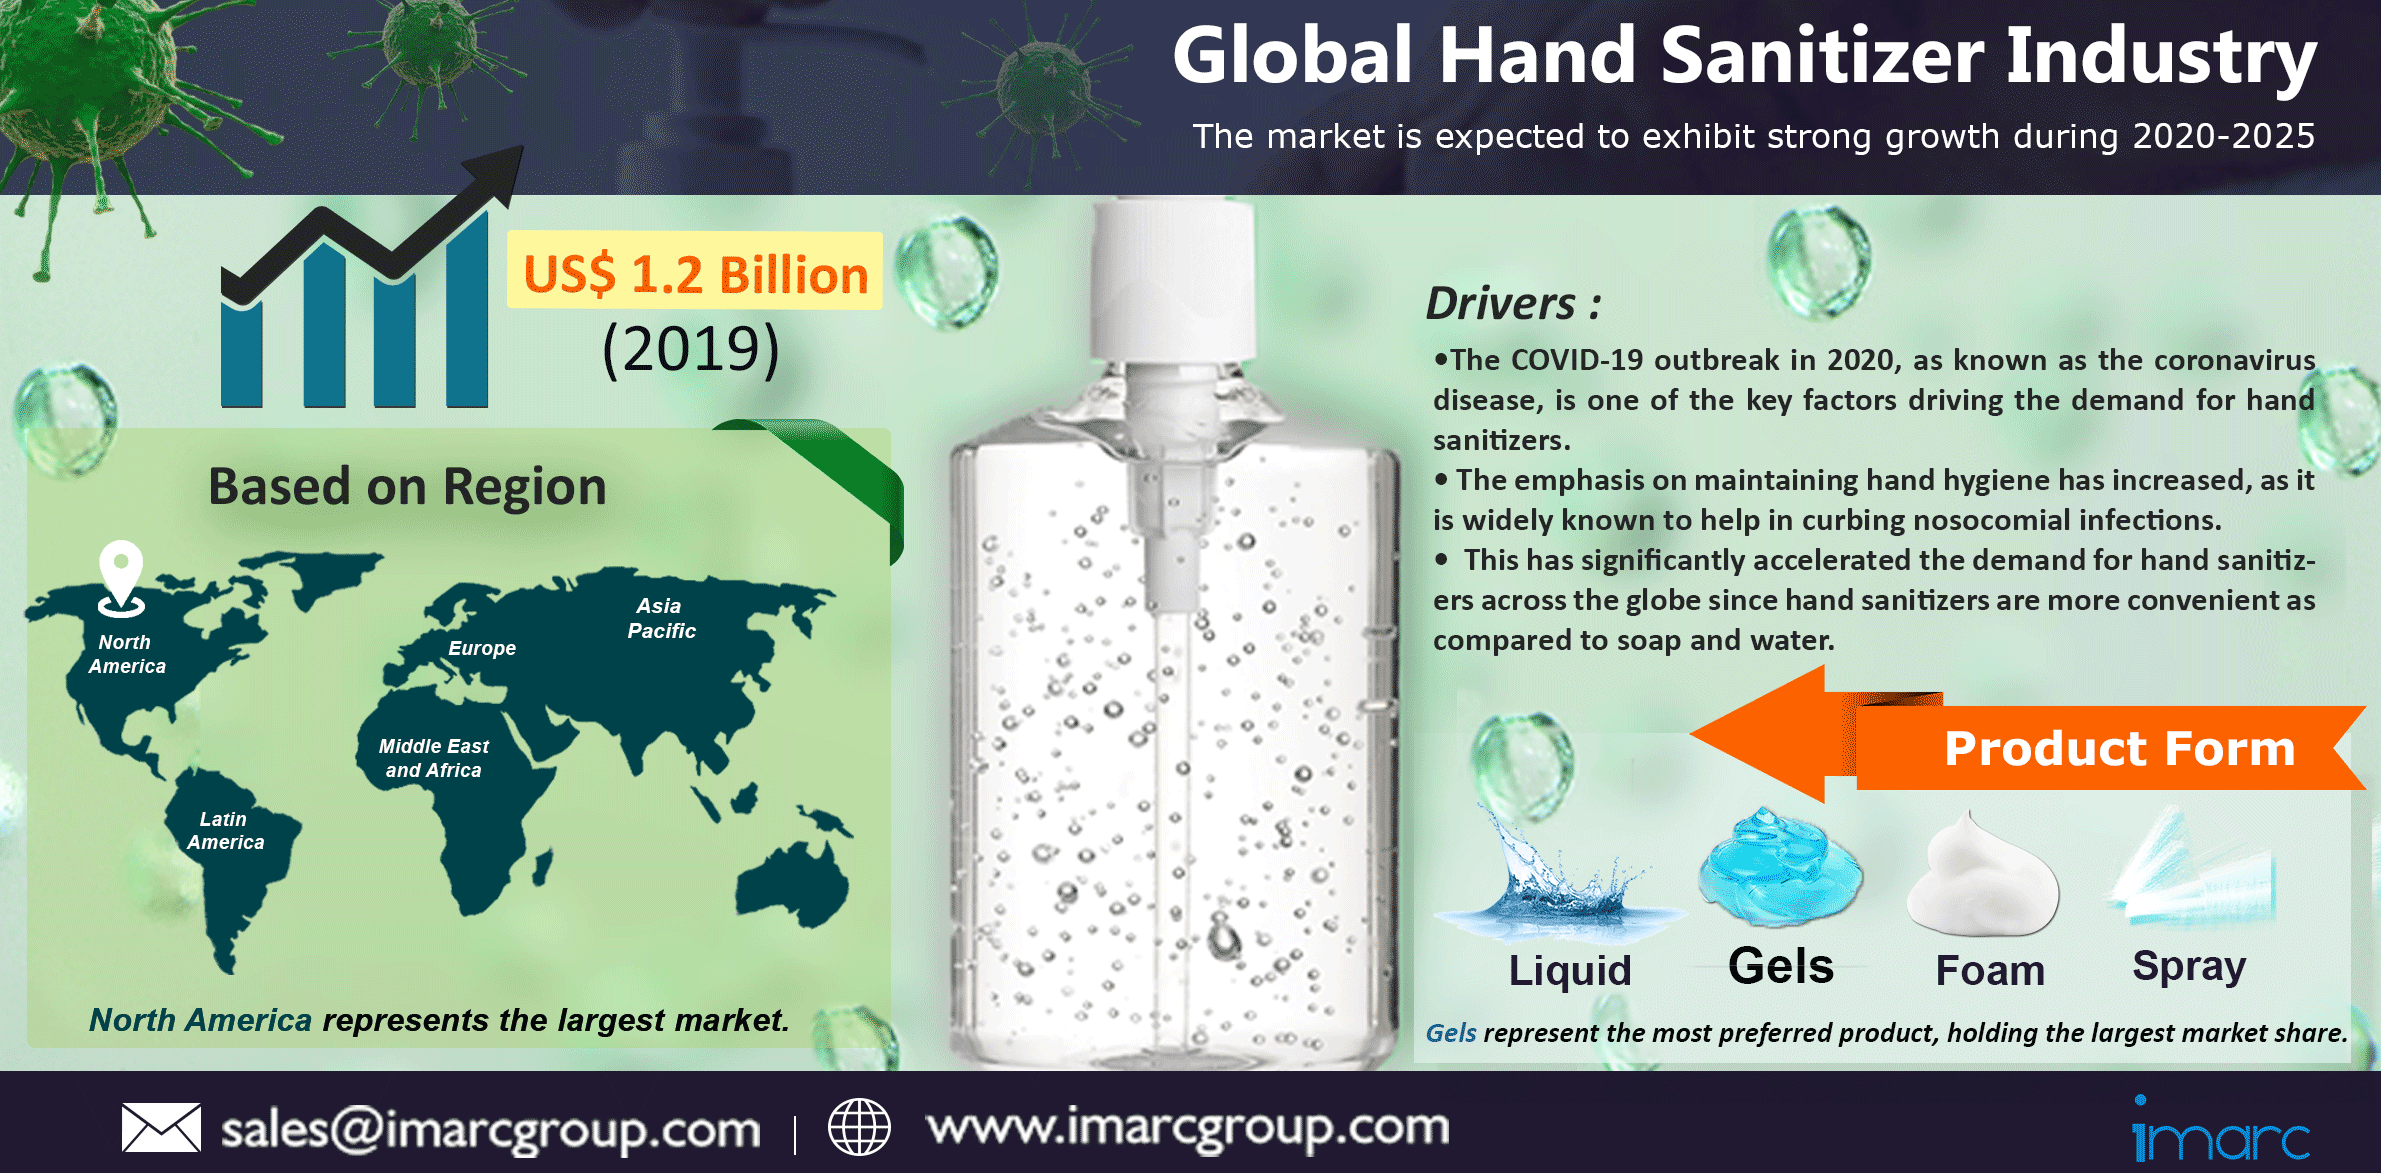 Global Hand Sanitizer Market Size, Share, Growth, Trends, Industry Analysis Report and Forecast 2020-2025